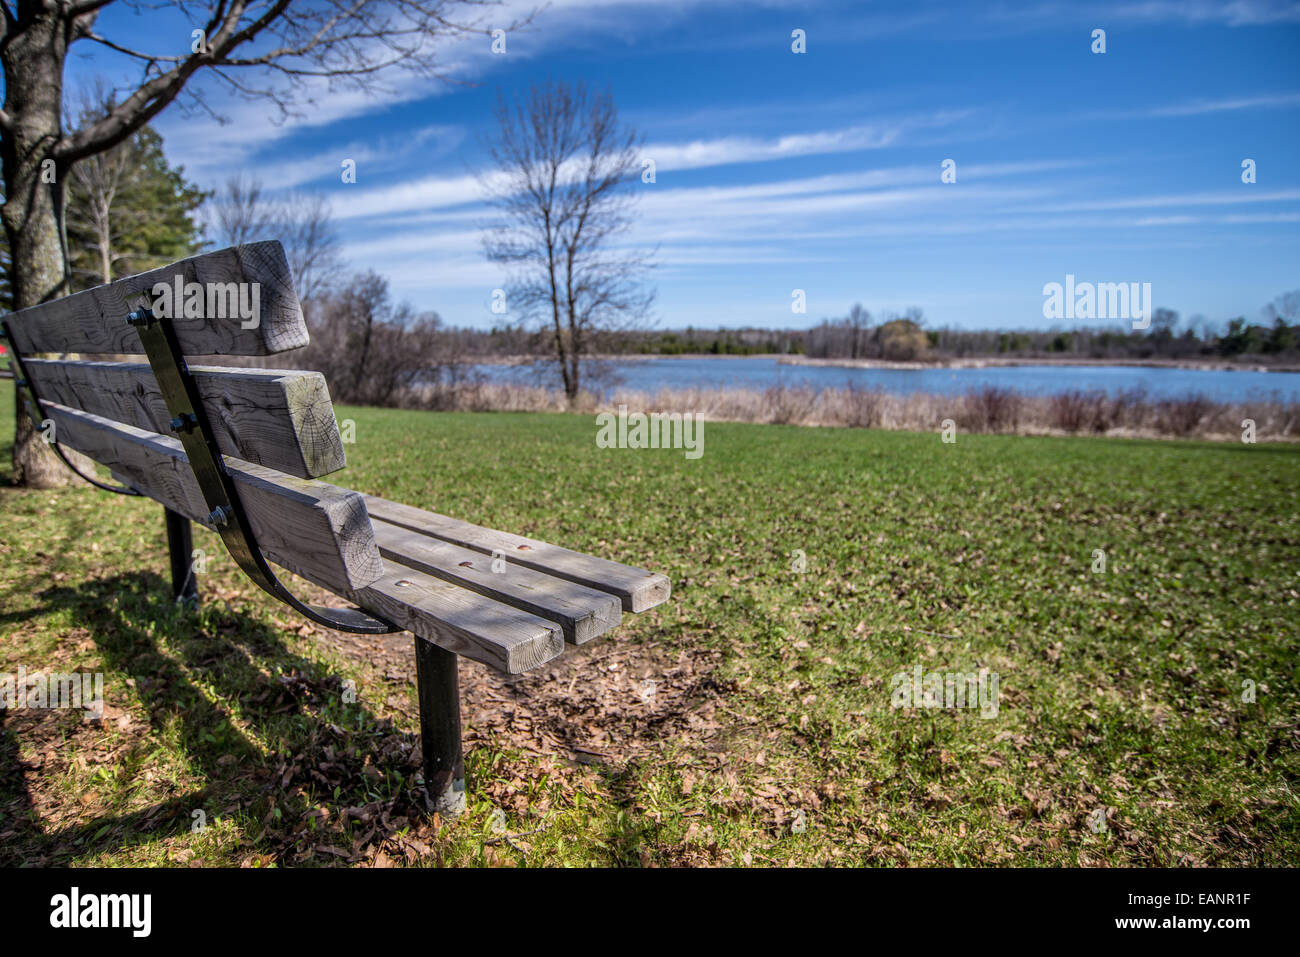 Marvelous An Empty Wood Park Bench Over Looks The Water On A Blue Sky Ibusinesslaw Wood Chair Design Ideas Ibusinesslaworg